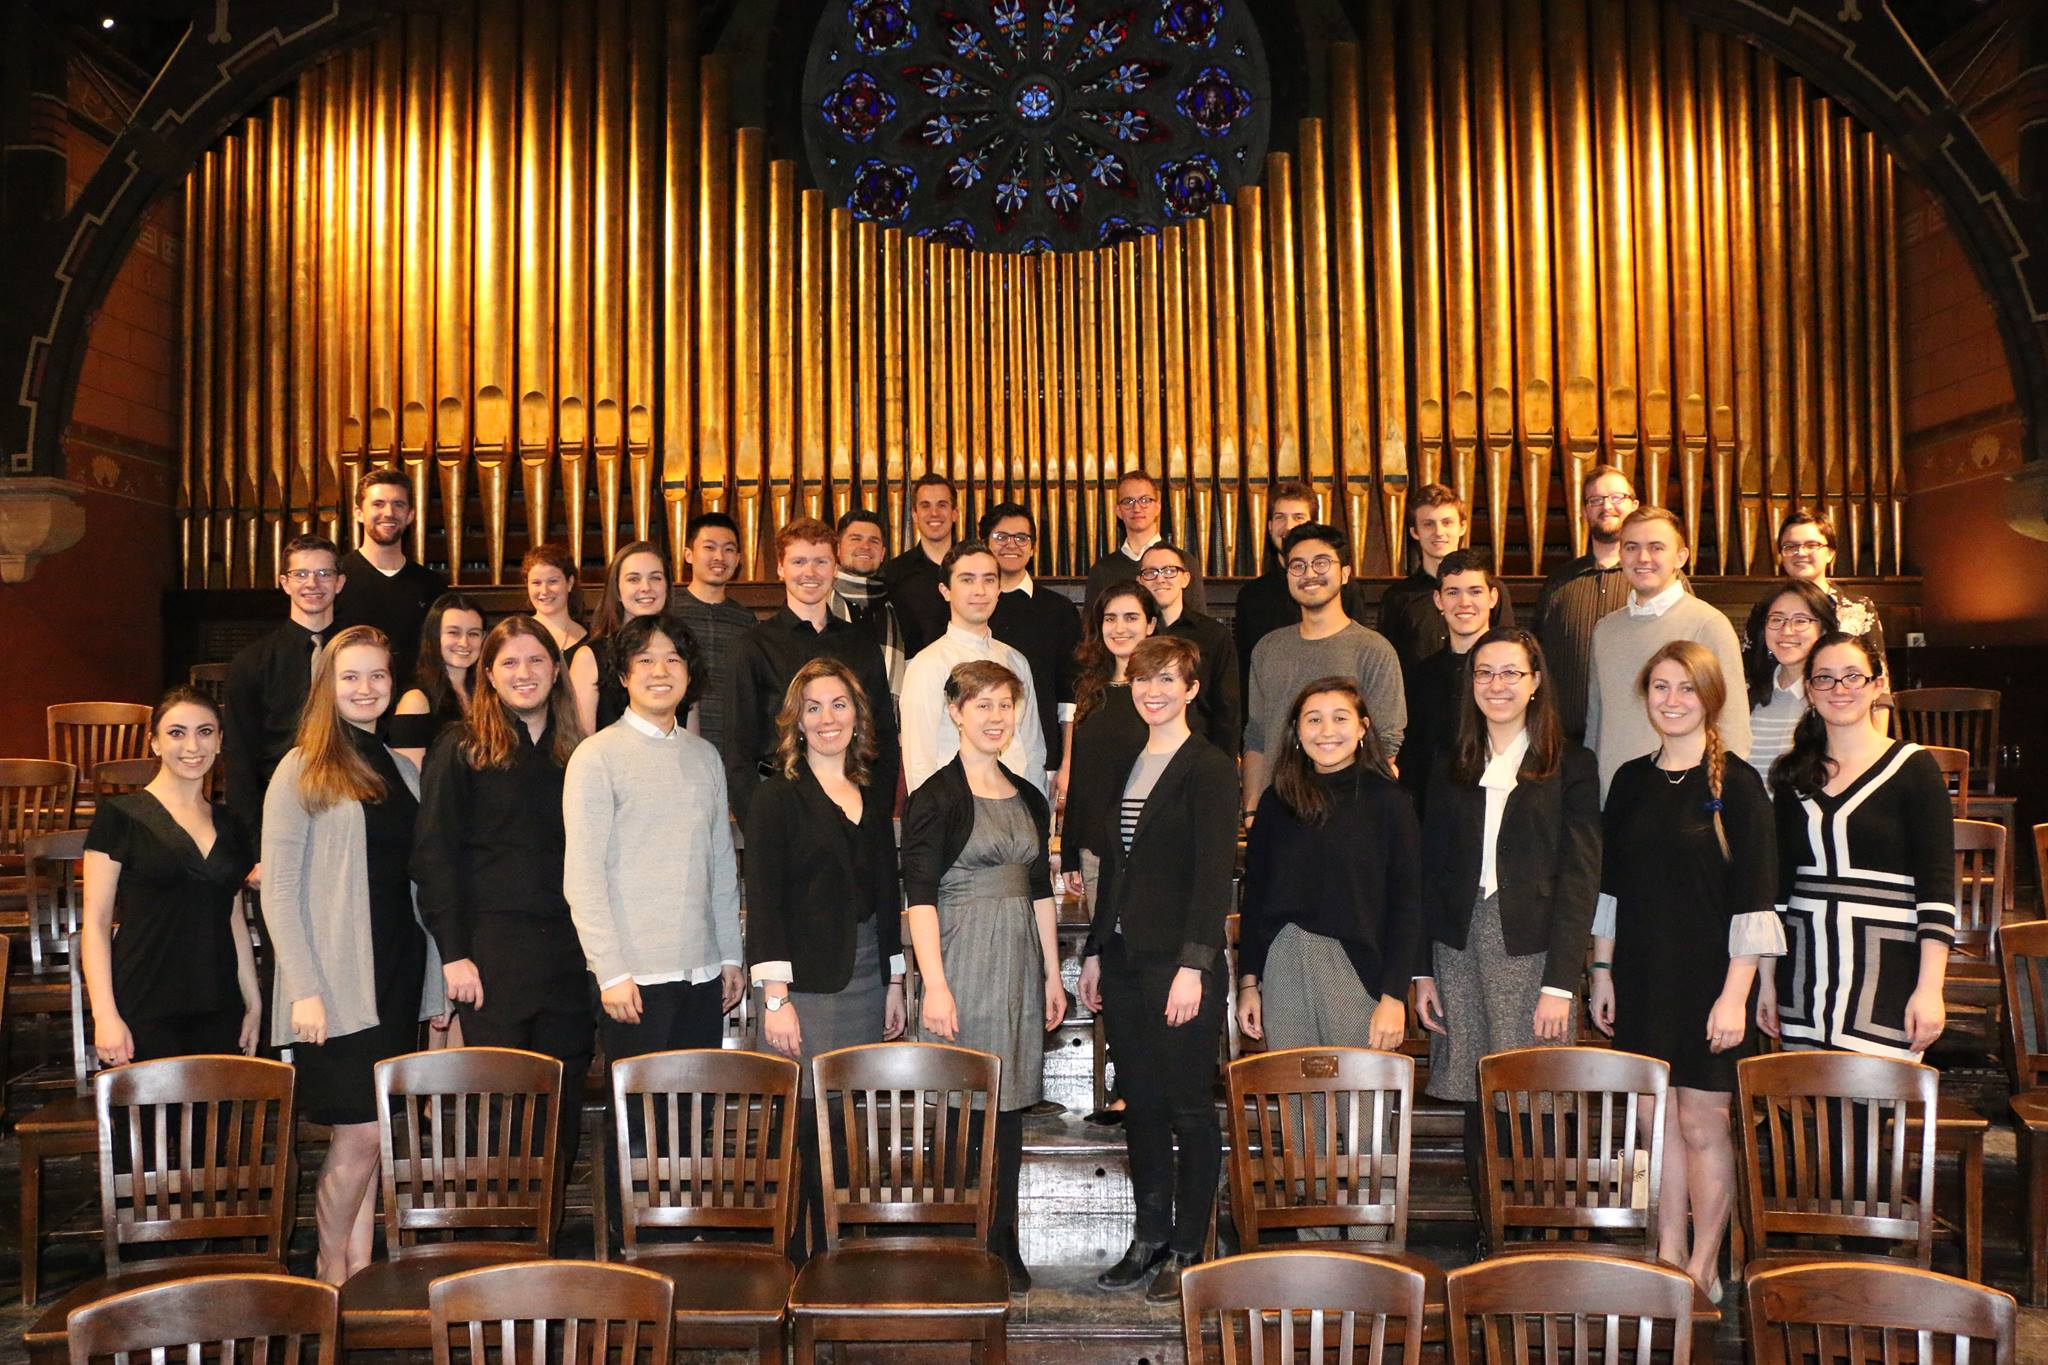 Cornell Chamber Singers group photo